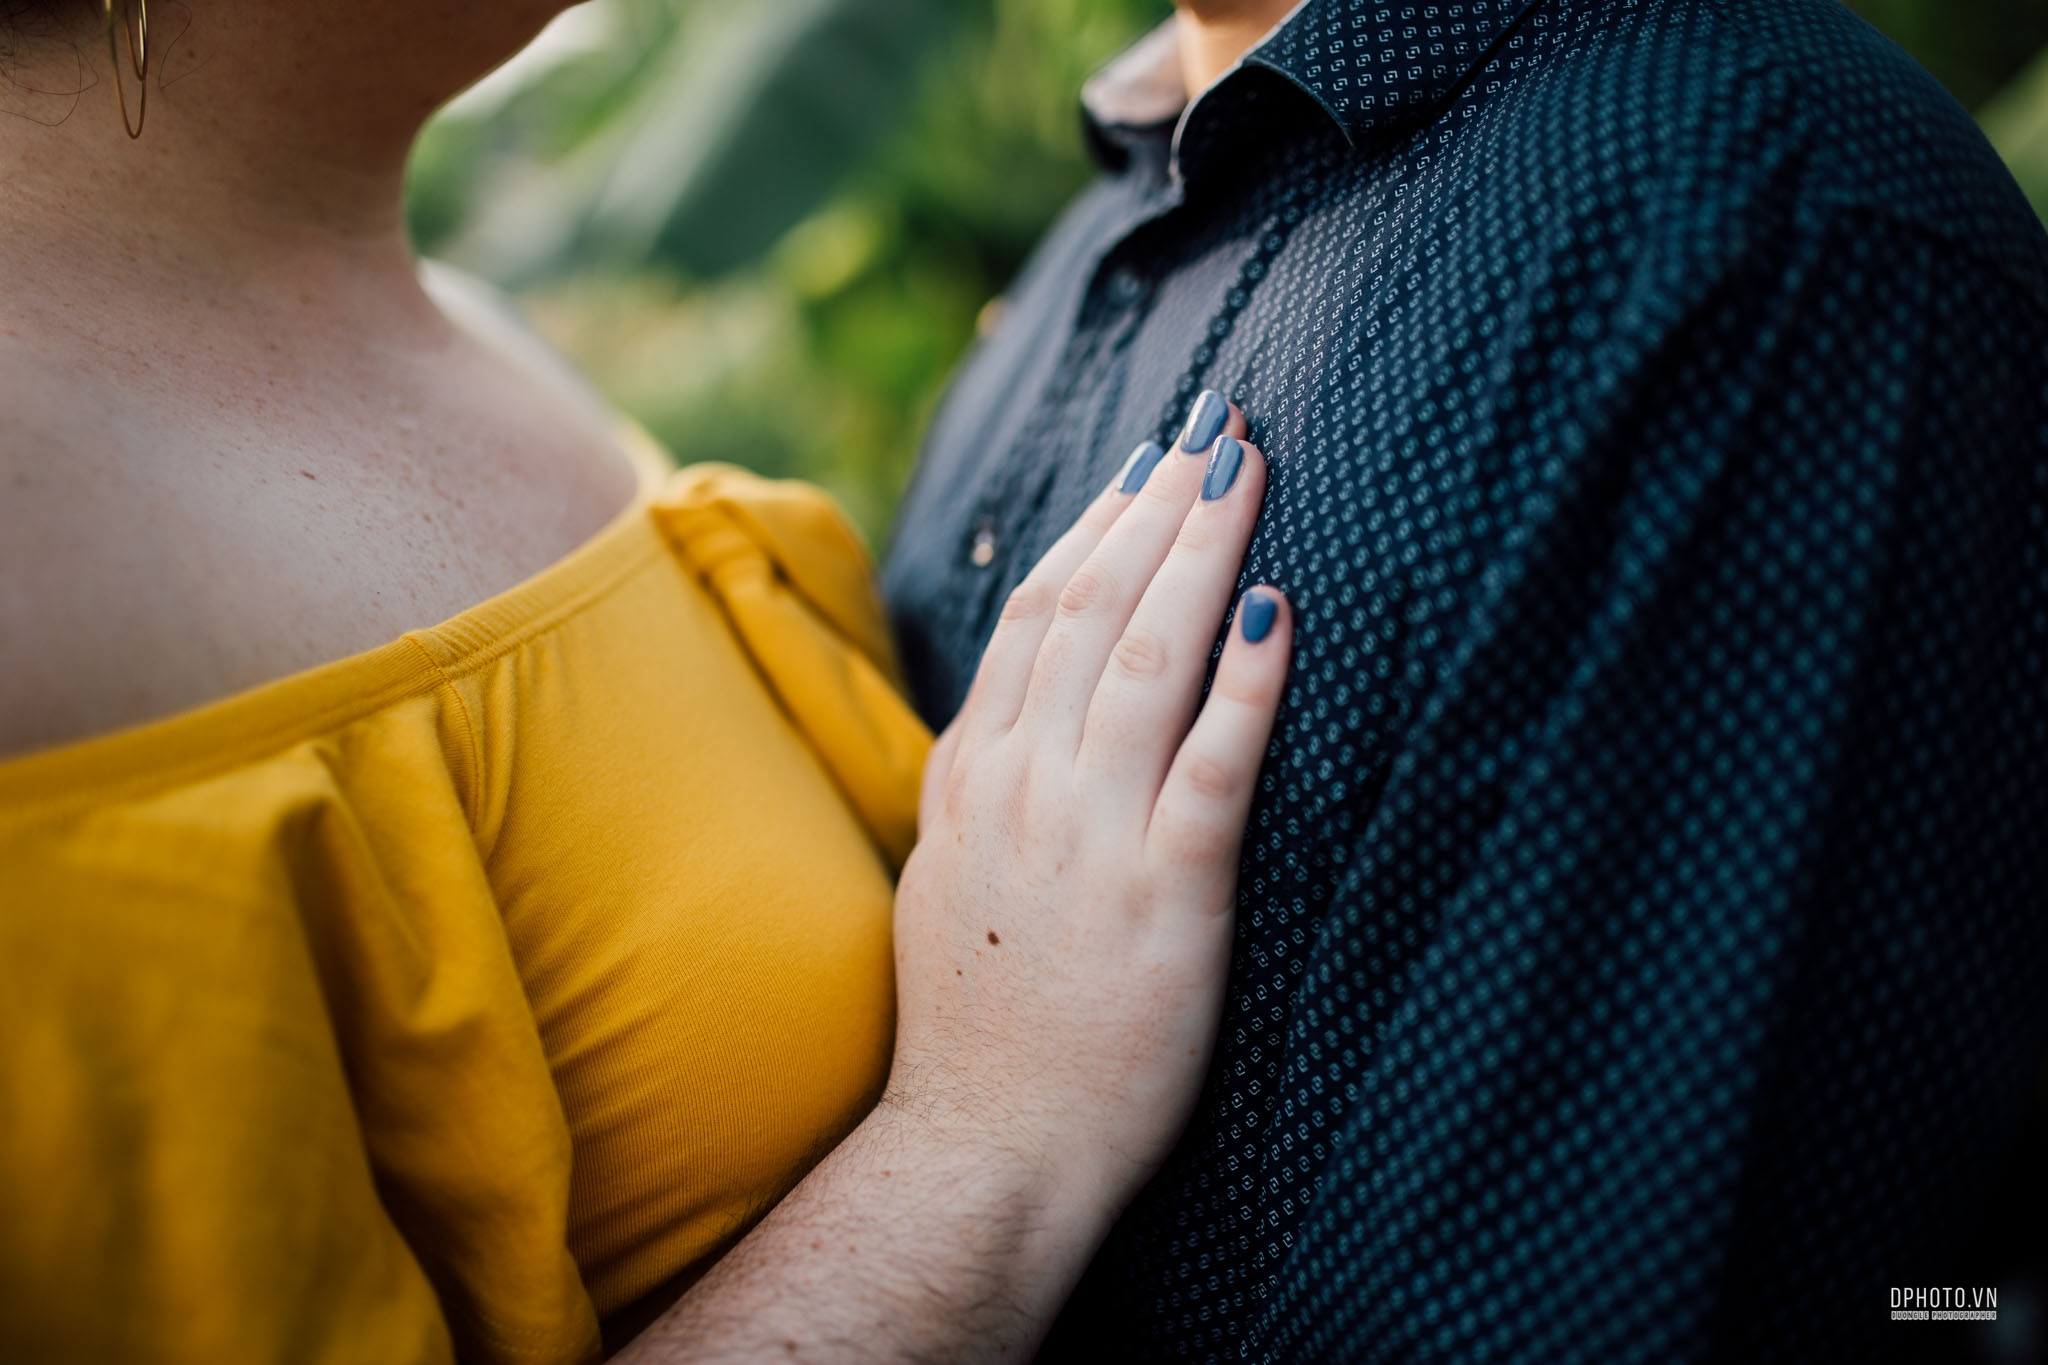 engagement_photo_in_sai_gon_ho_chi_minh_viet_nam45